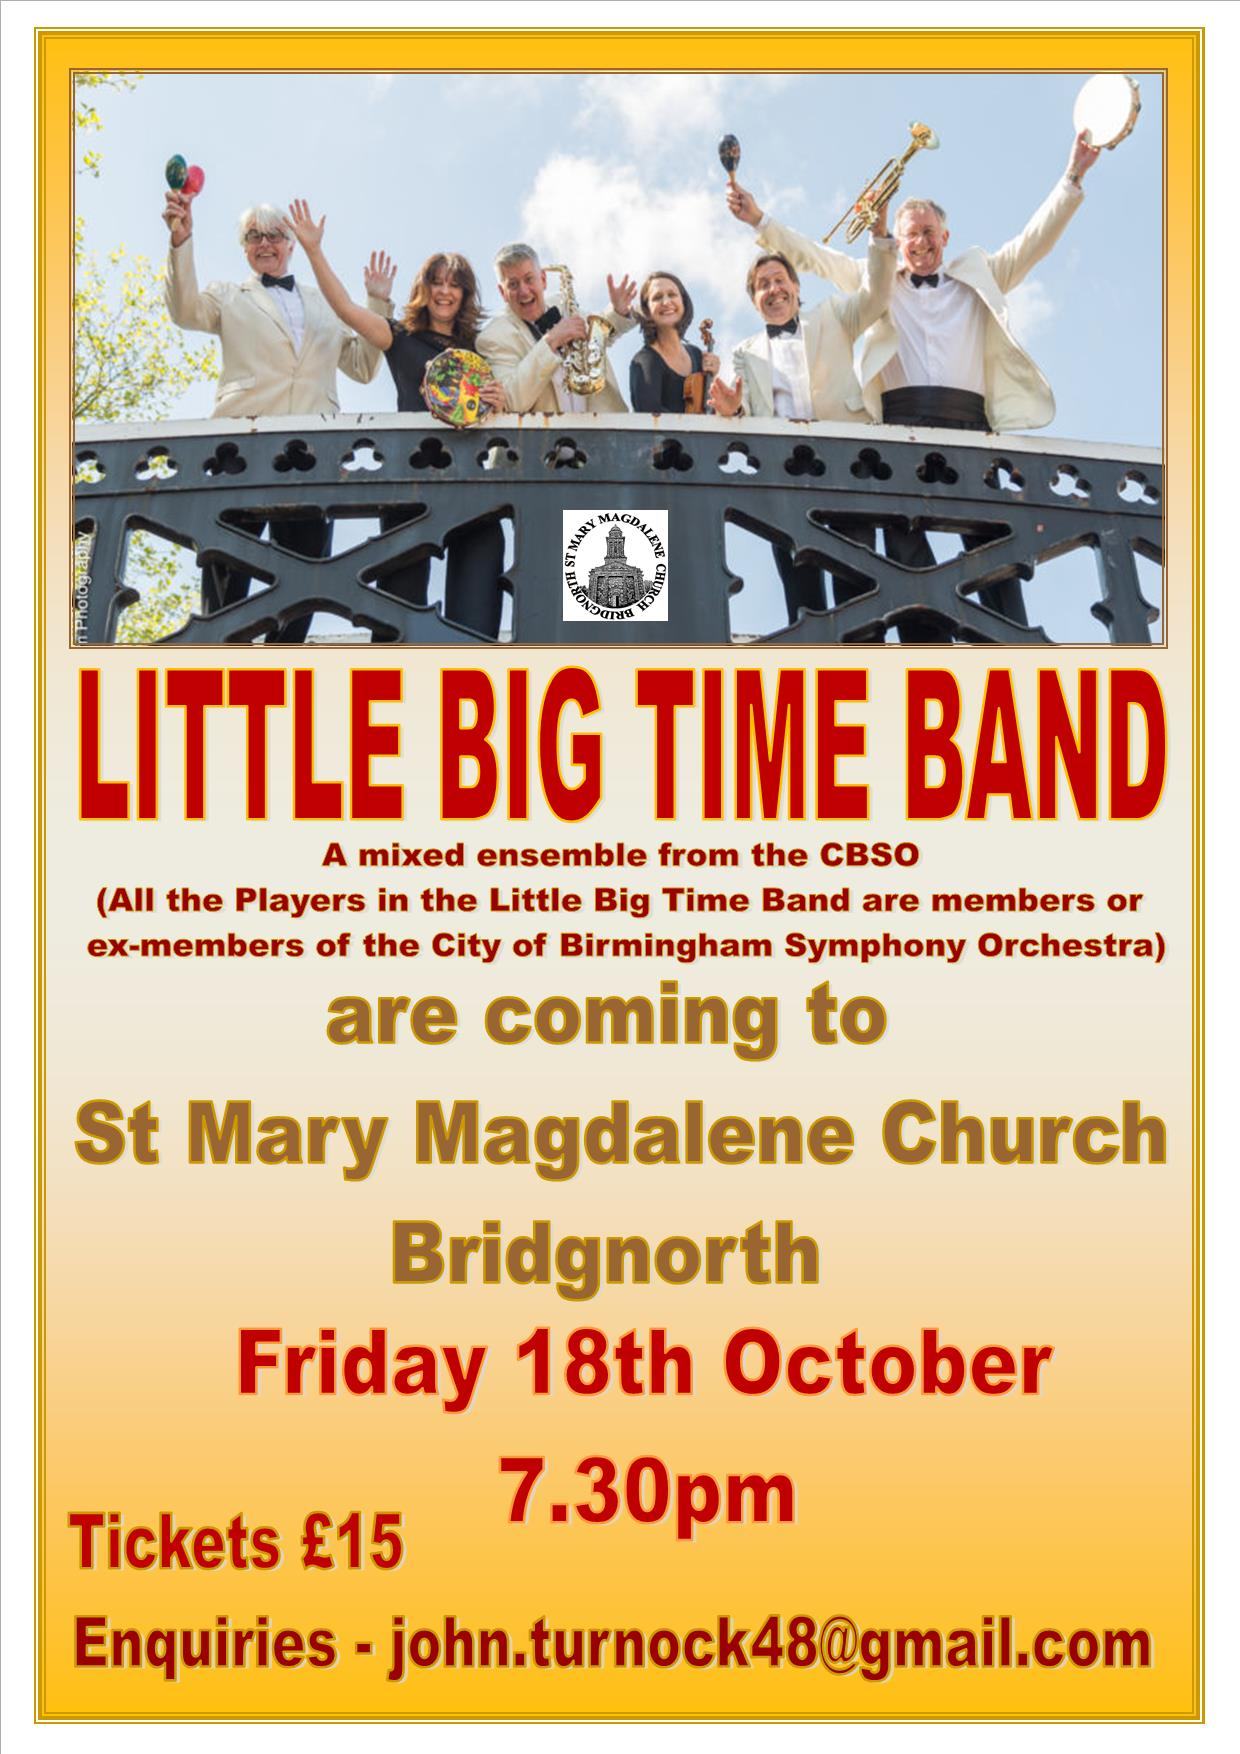 LITTLE BIG TIME BAND POSTER 18.10.19